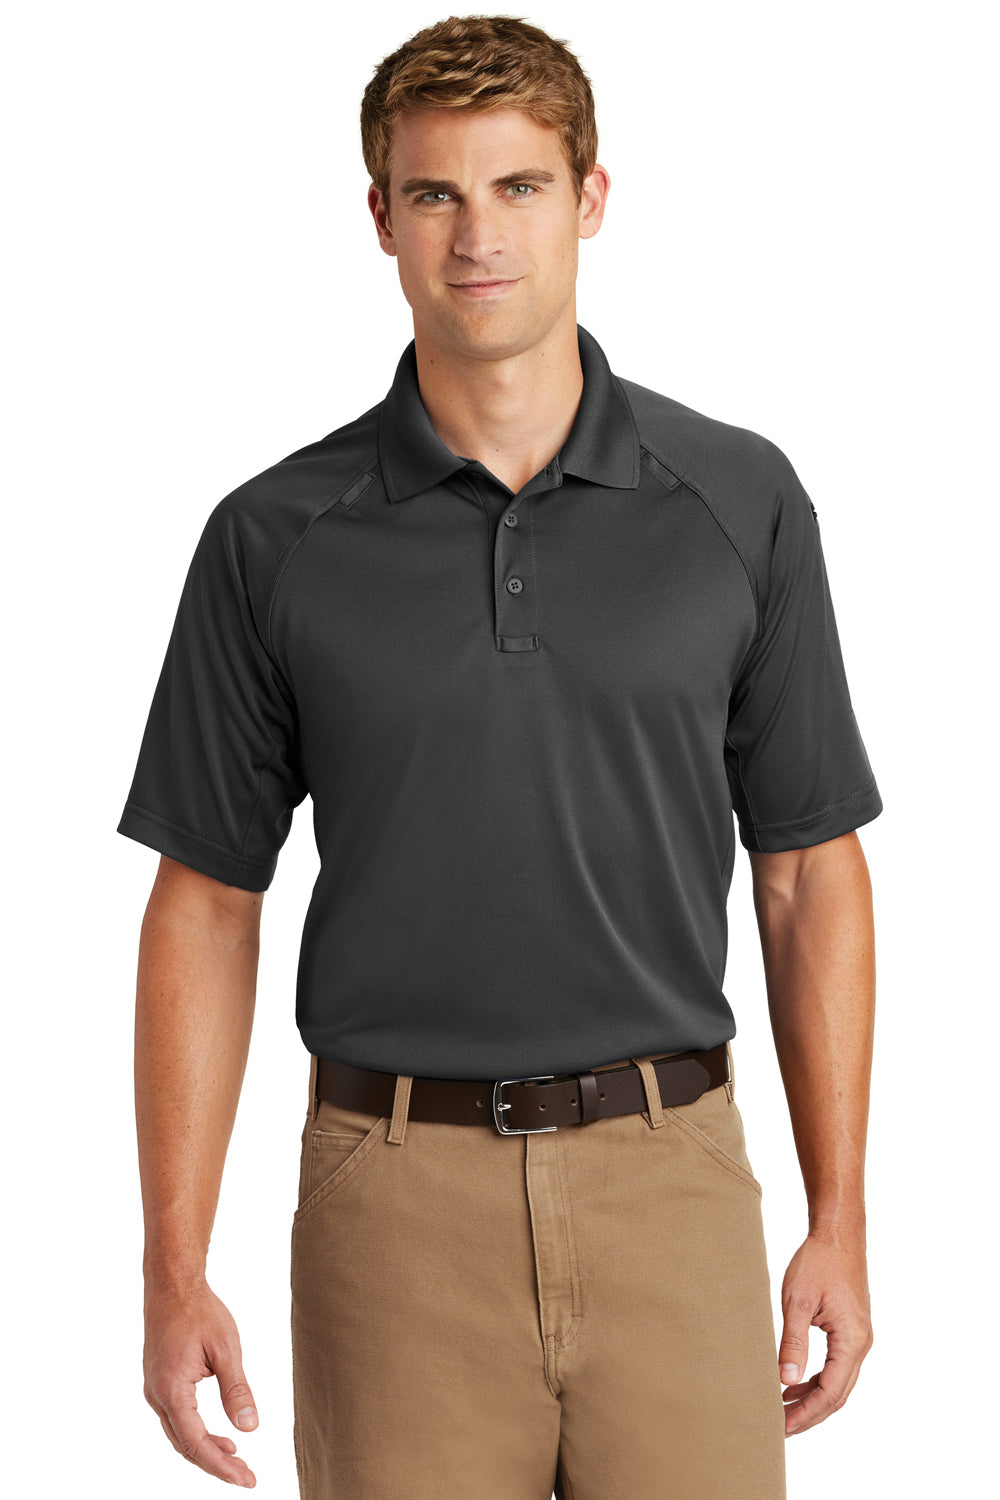 CornerStone CS410 Mens Select Tactical Moisture Wicking Short Sleeve Polo Shirt Charcoal Grey Front